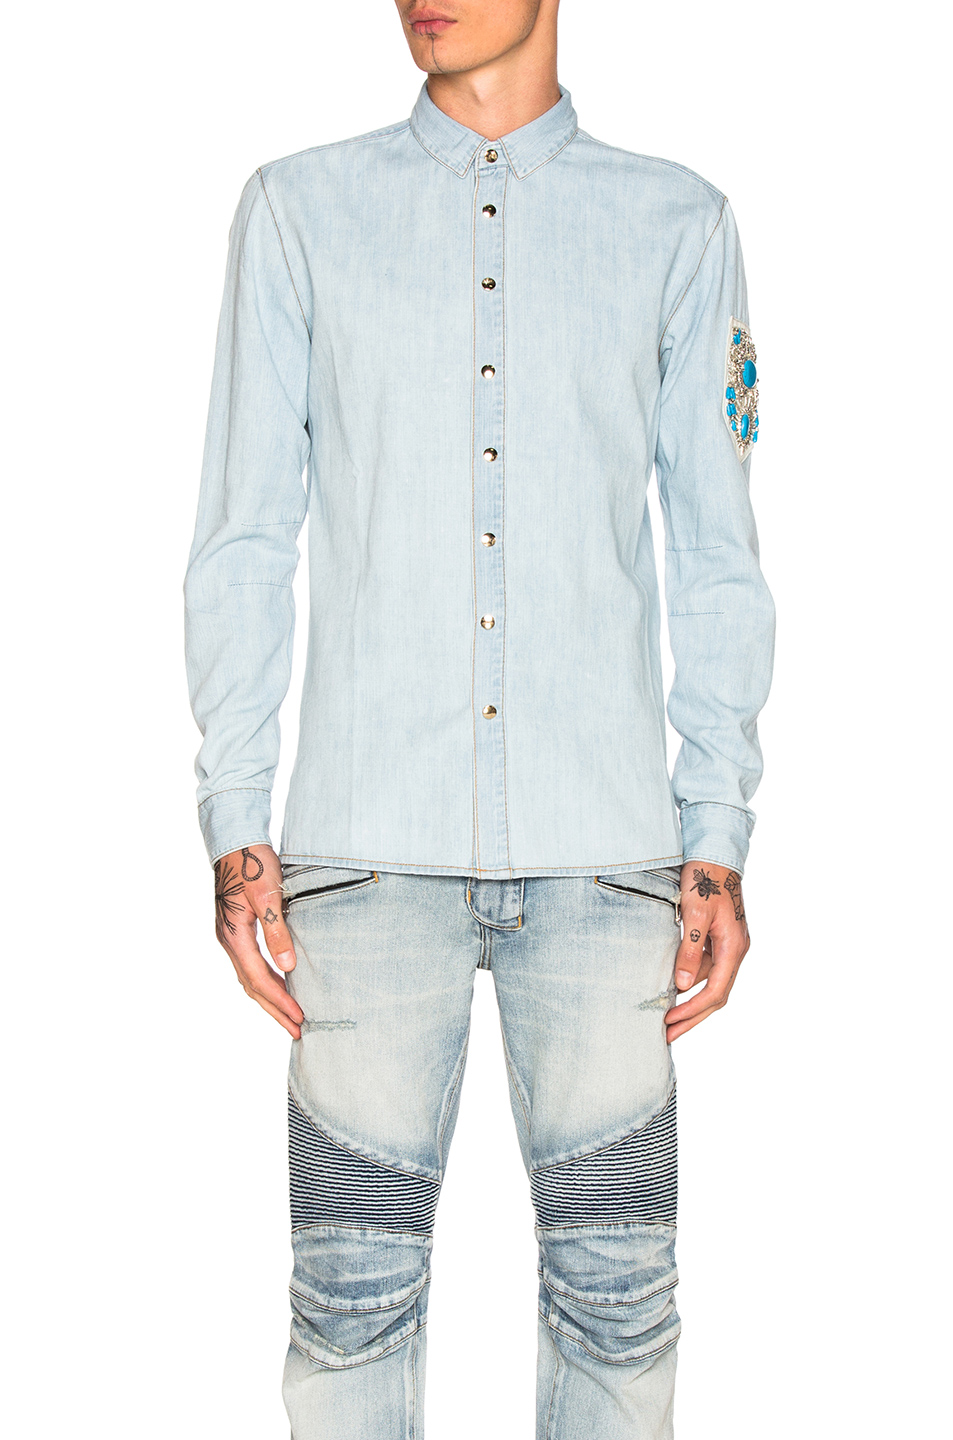 BALMAIN Embroidered Denim Shirt in Blue